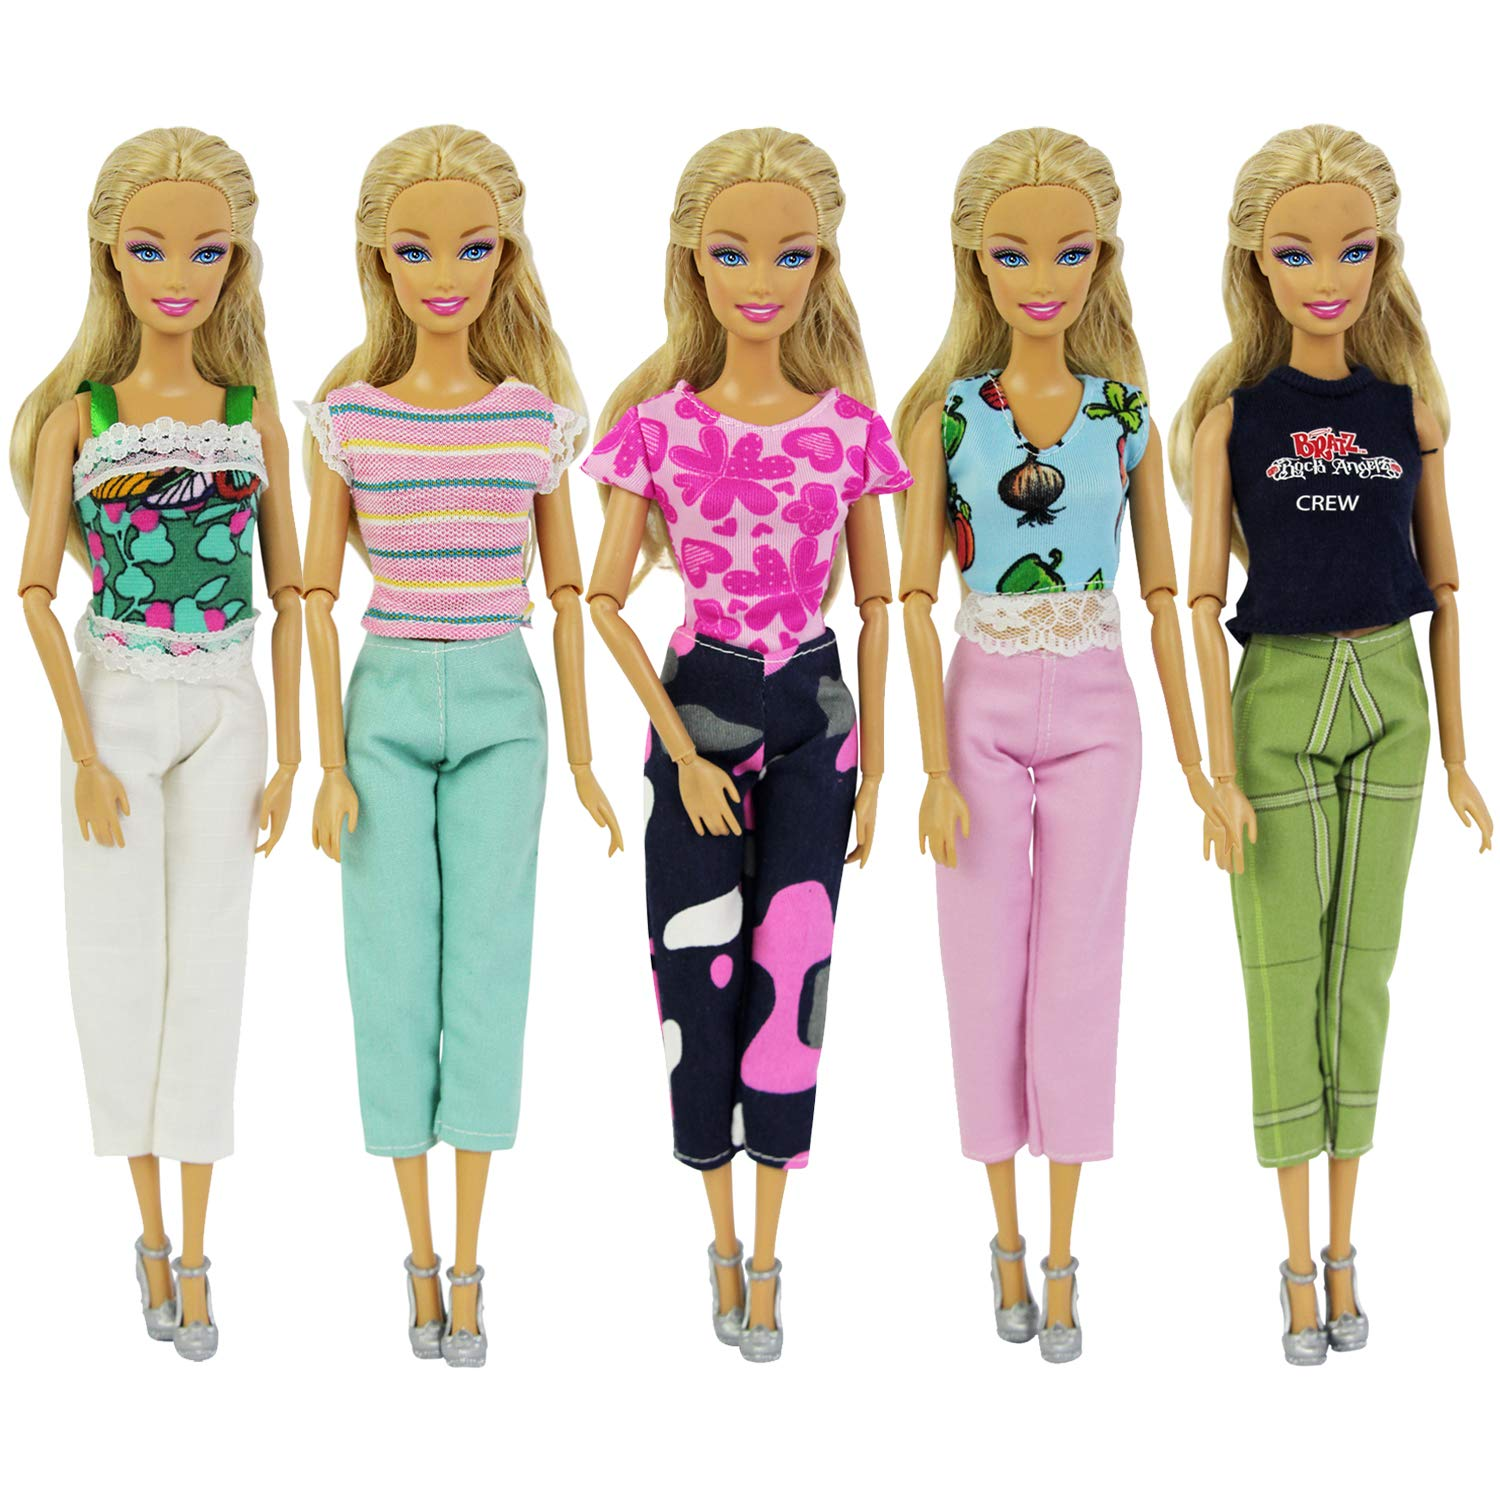 8b307d4f6044 ZITA ELEMENT 5 Sets Casual Wear Clothes for 11.5 inch Girl Doll Outfits |  Random Style 5 Shirts Matching 5 Pants for 11.5